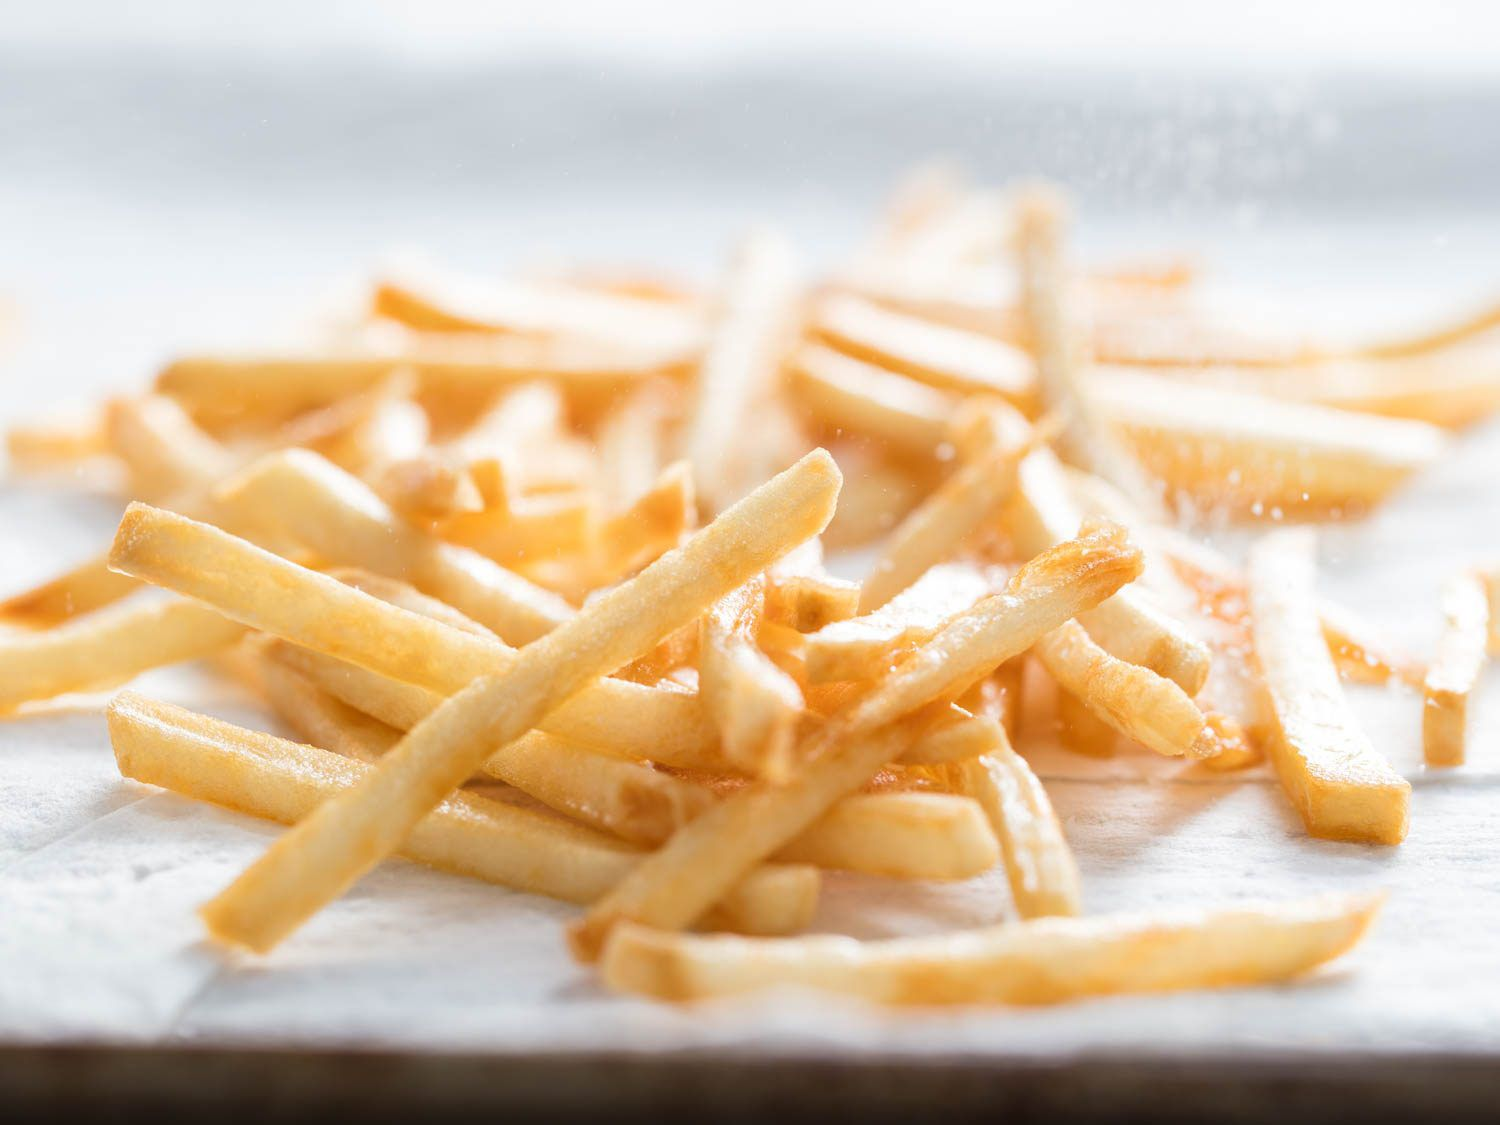 A tray of golden, crispy French fries